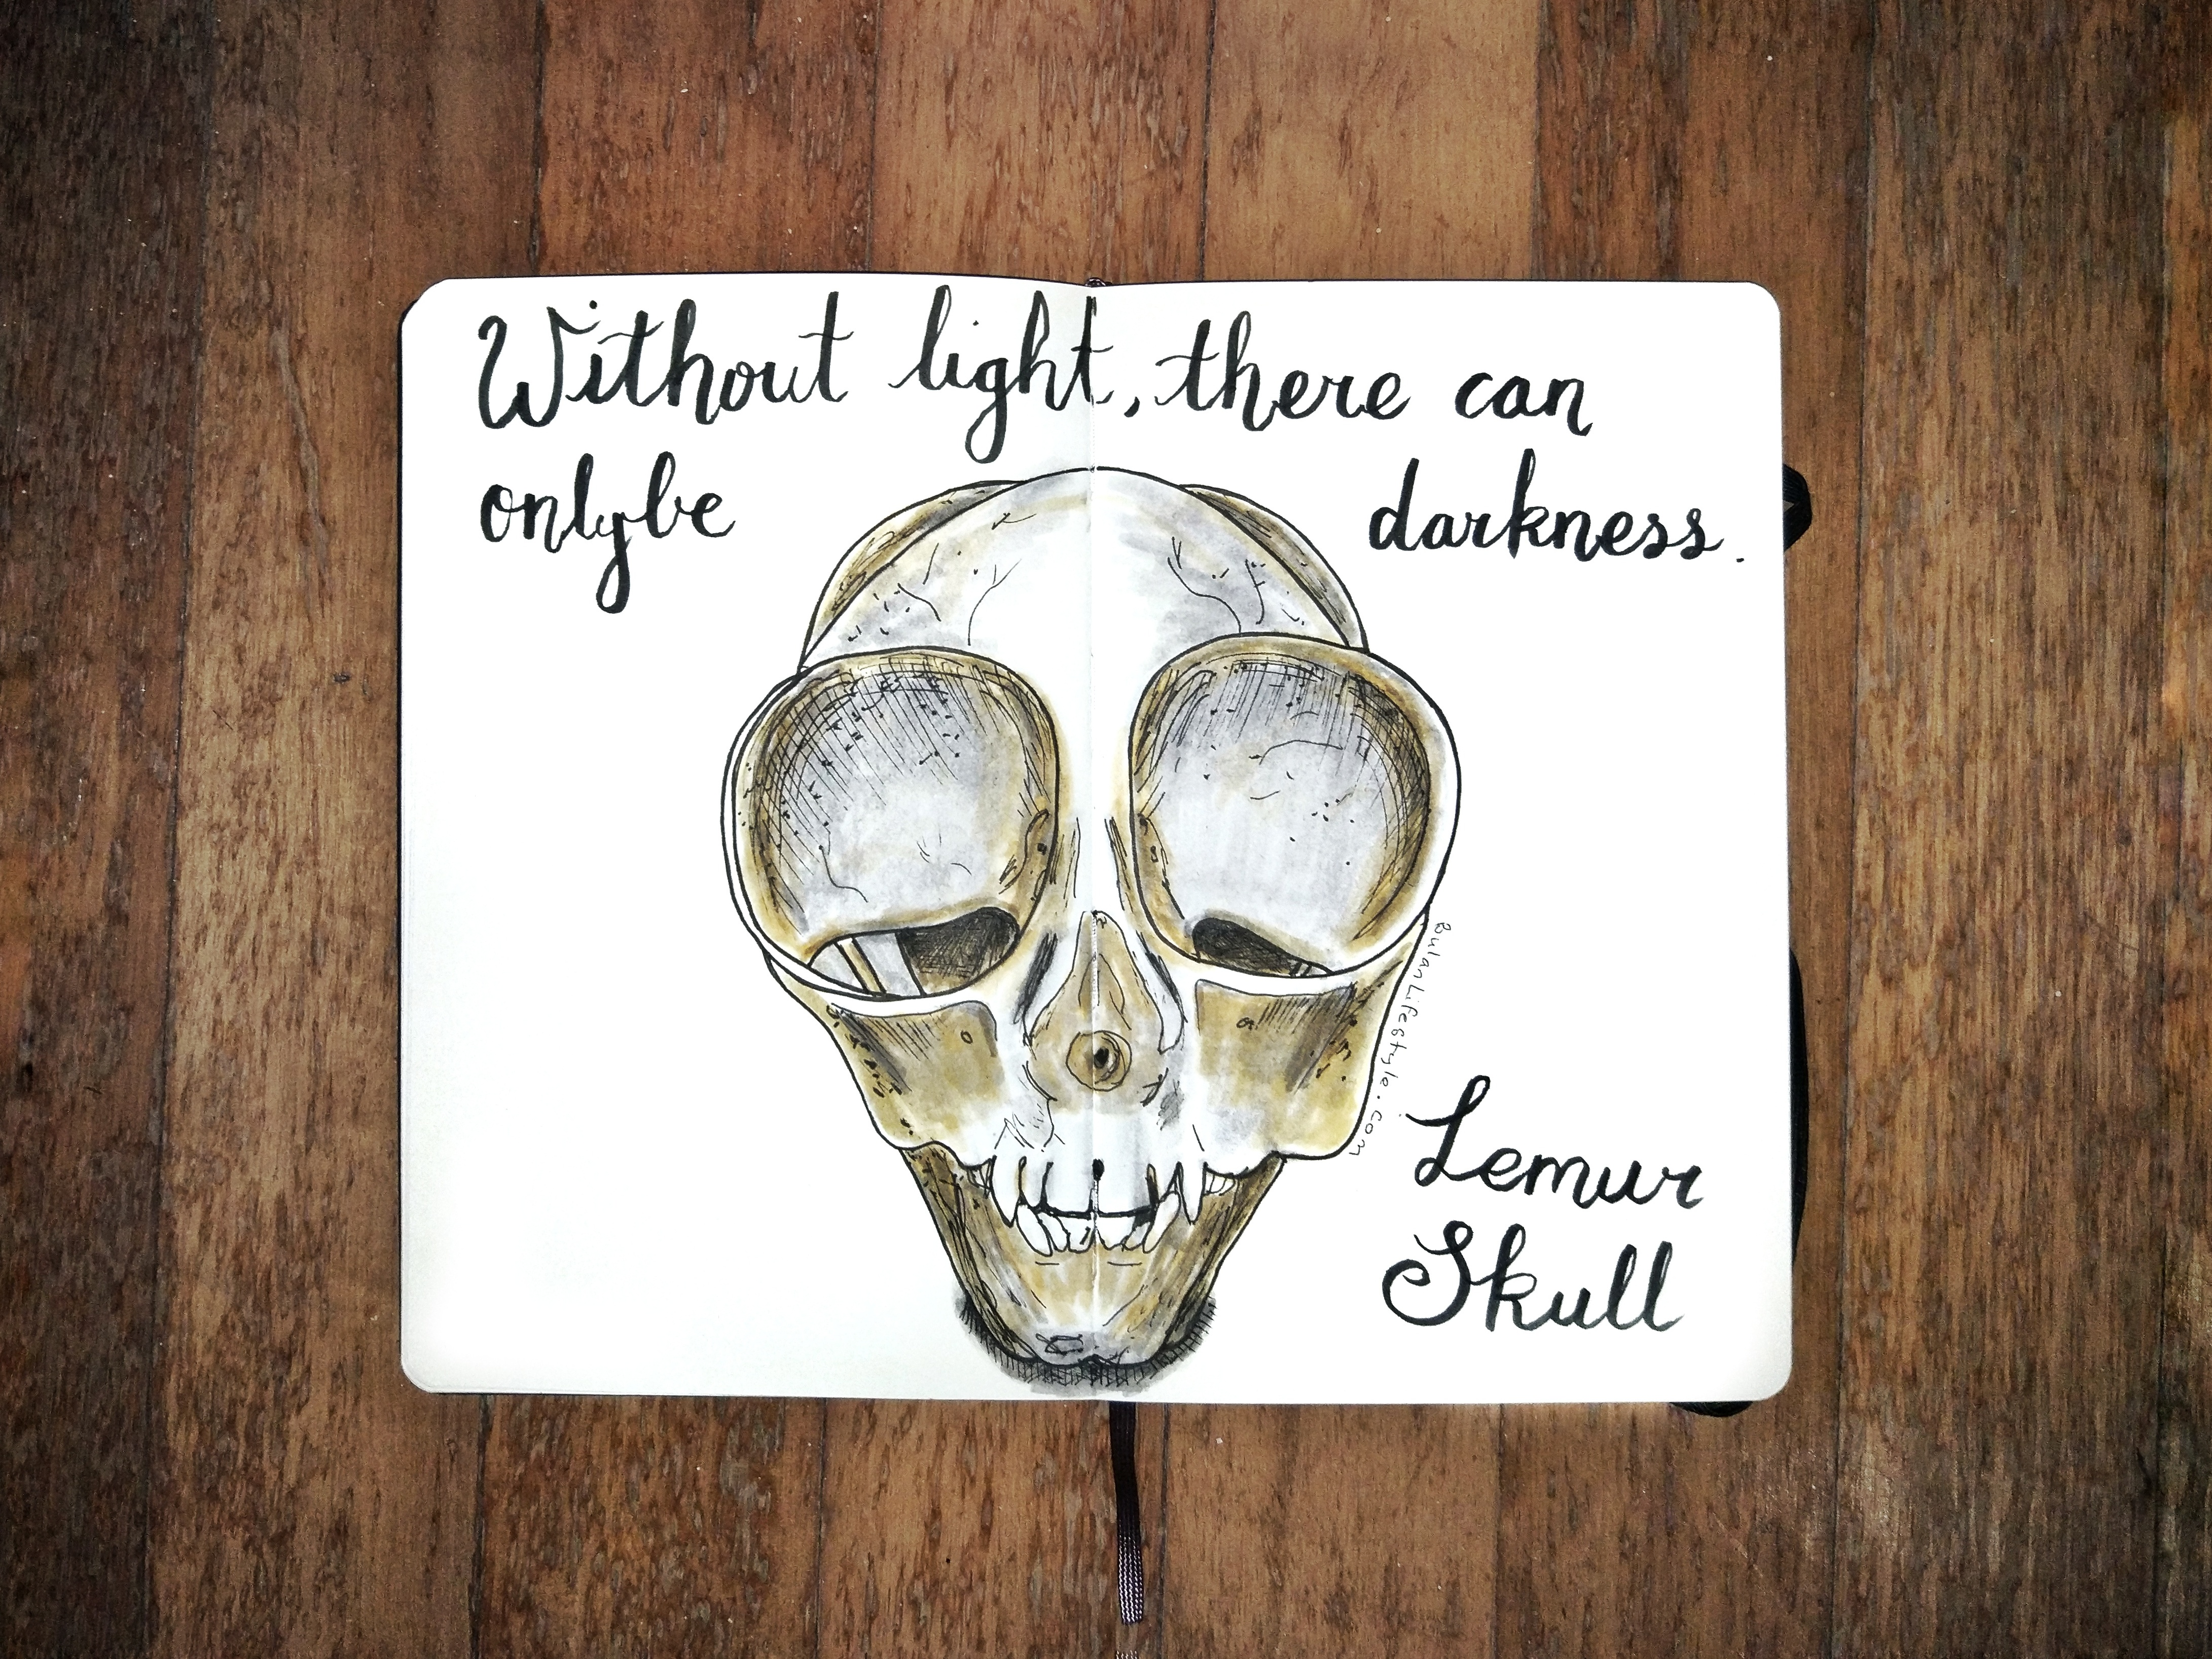 Without light, there can only be darkness